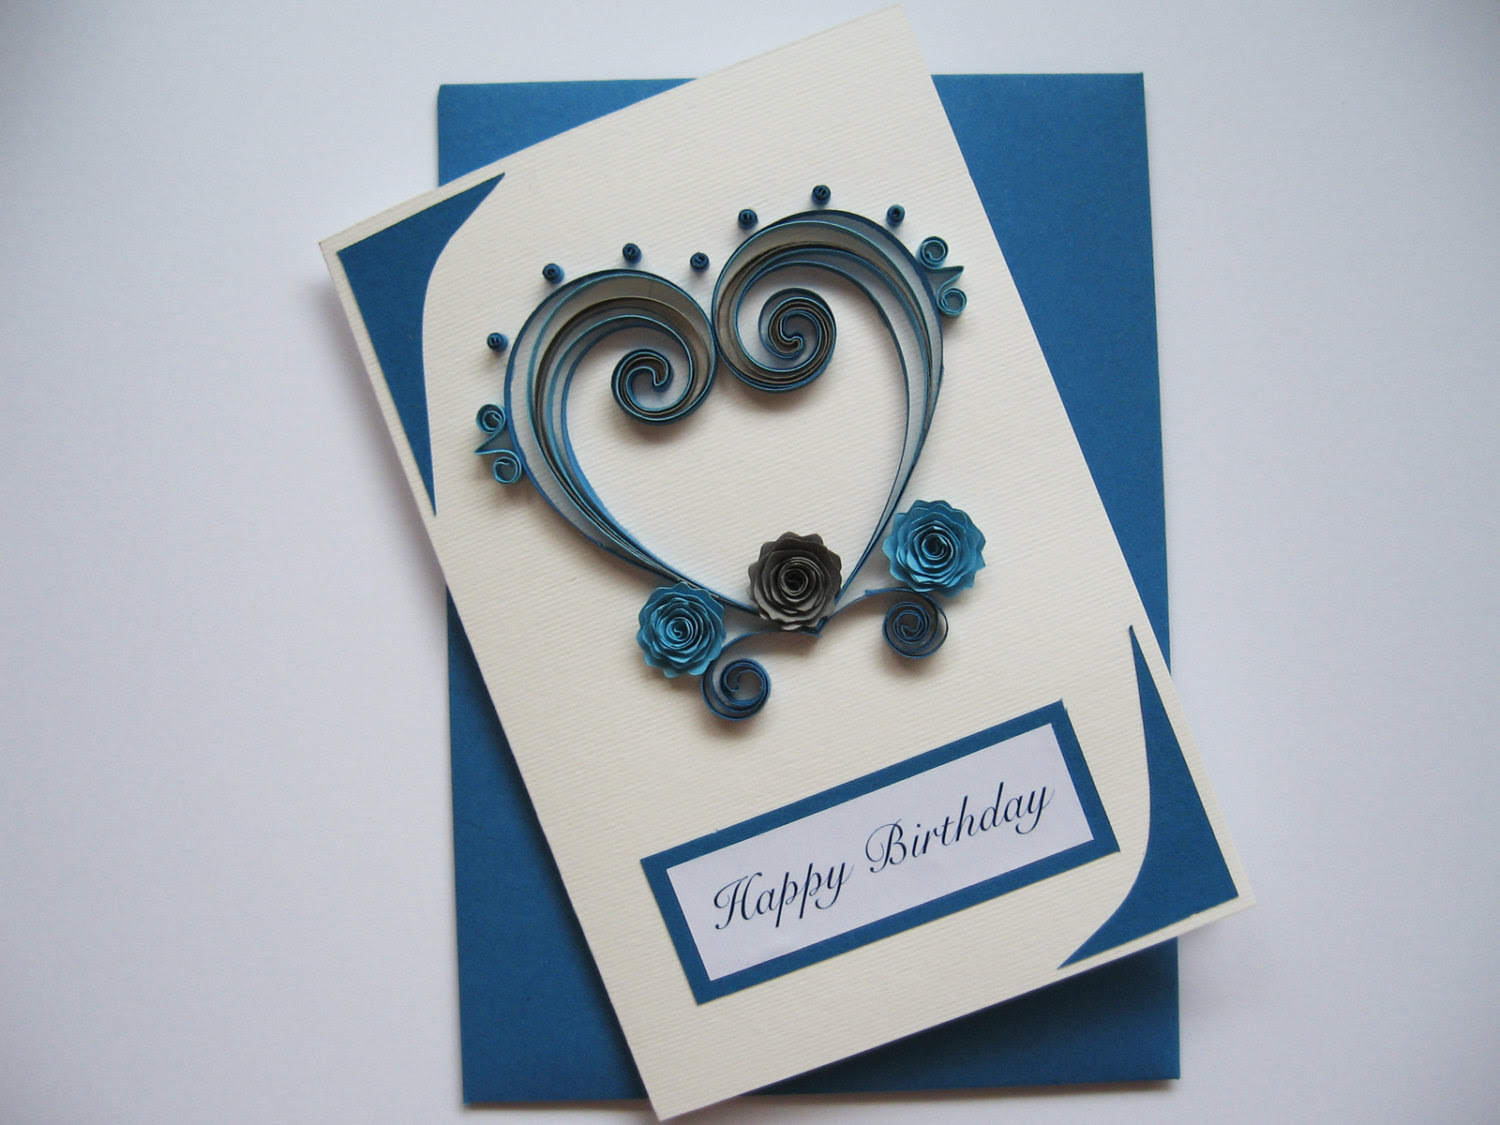 Birthday Greeting Cards For Him Card Design Template